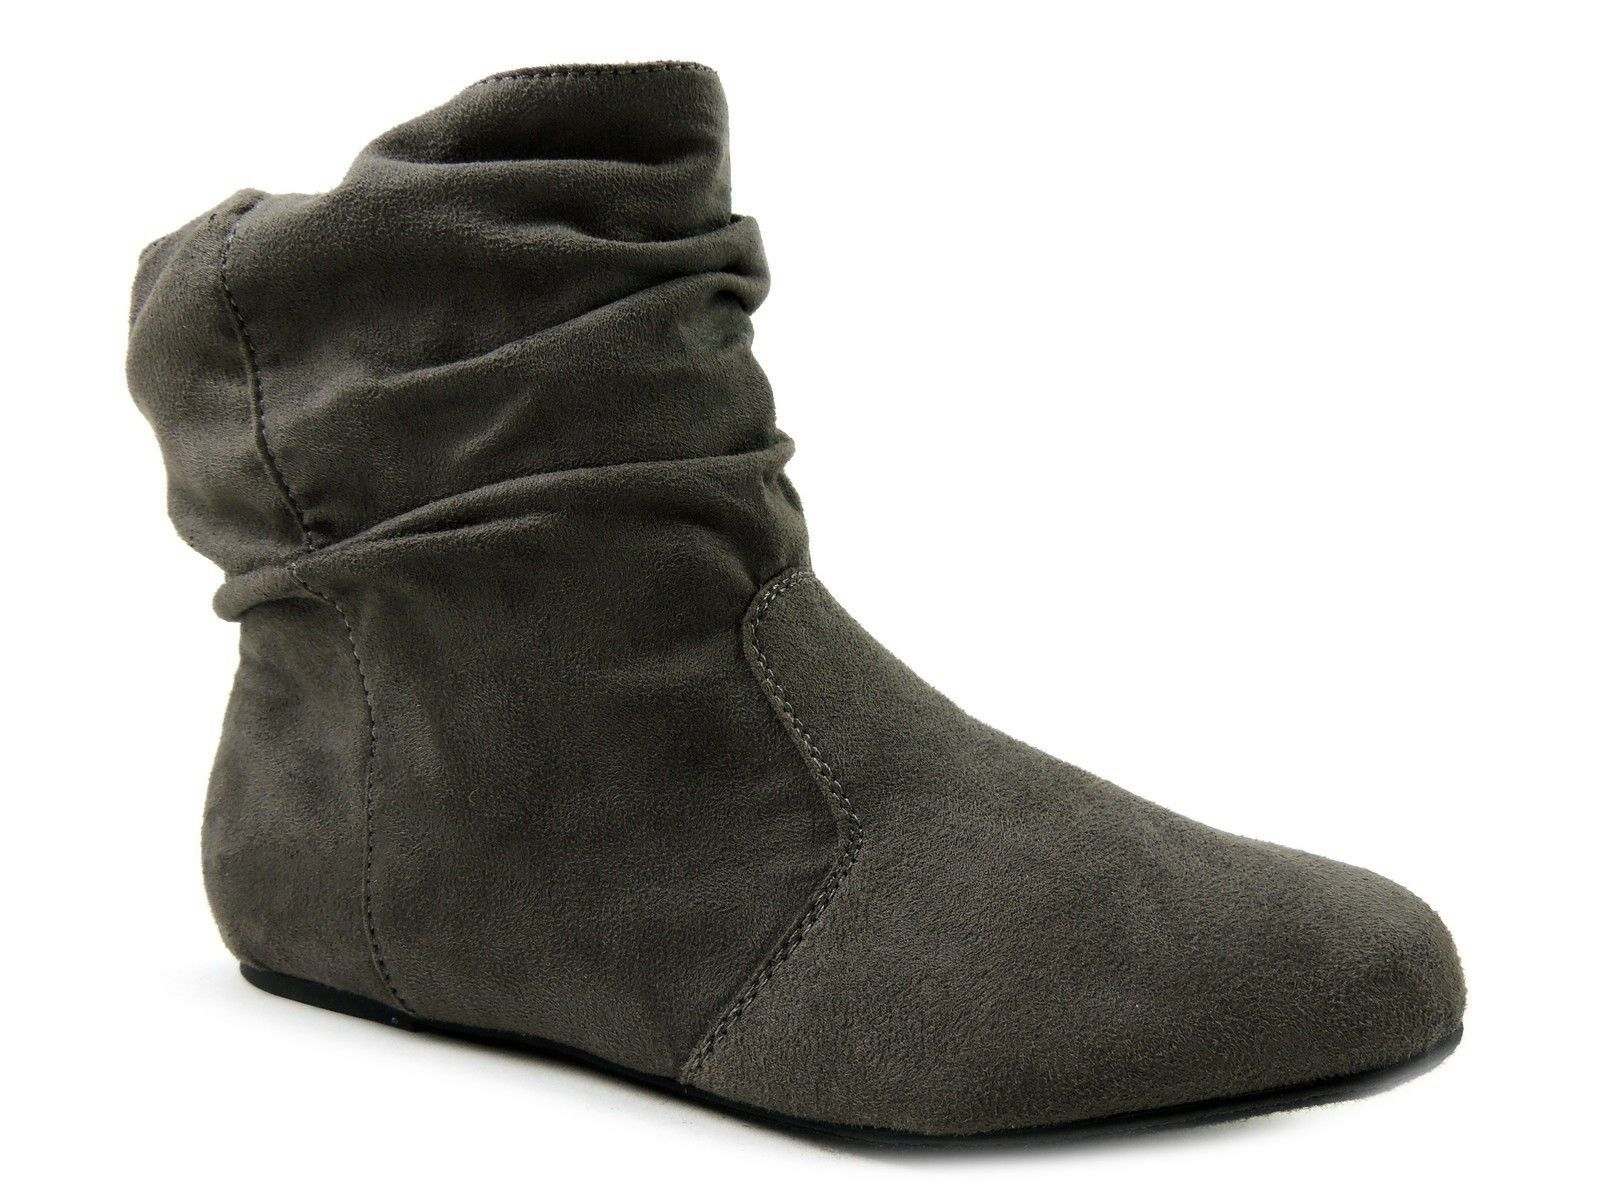 Material Girl Women's Shoes, Snazzy Slouch Ankle-Boots Grey Size 9 Medium (B, M)